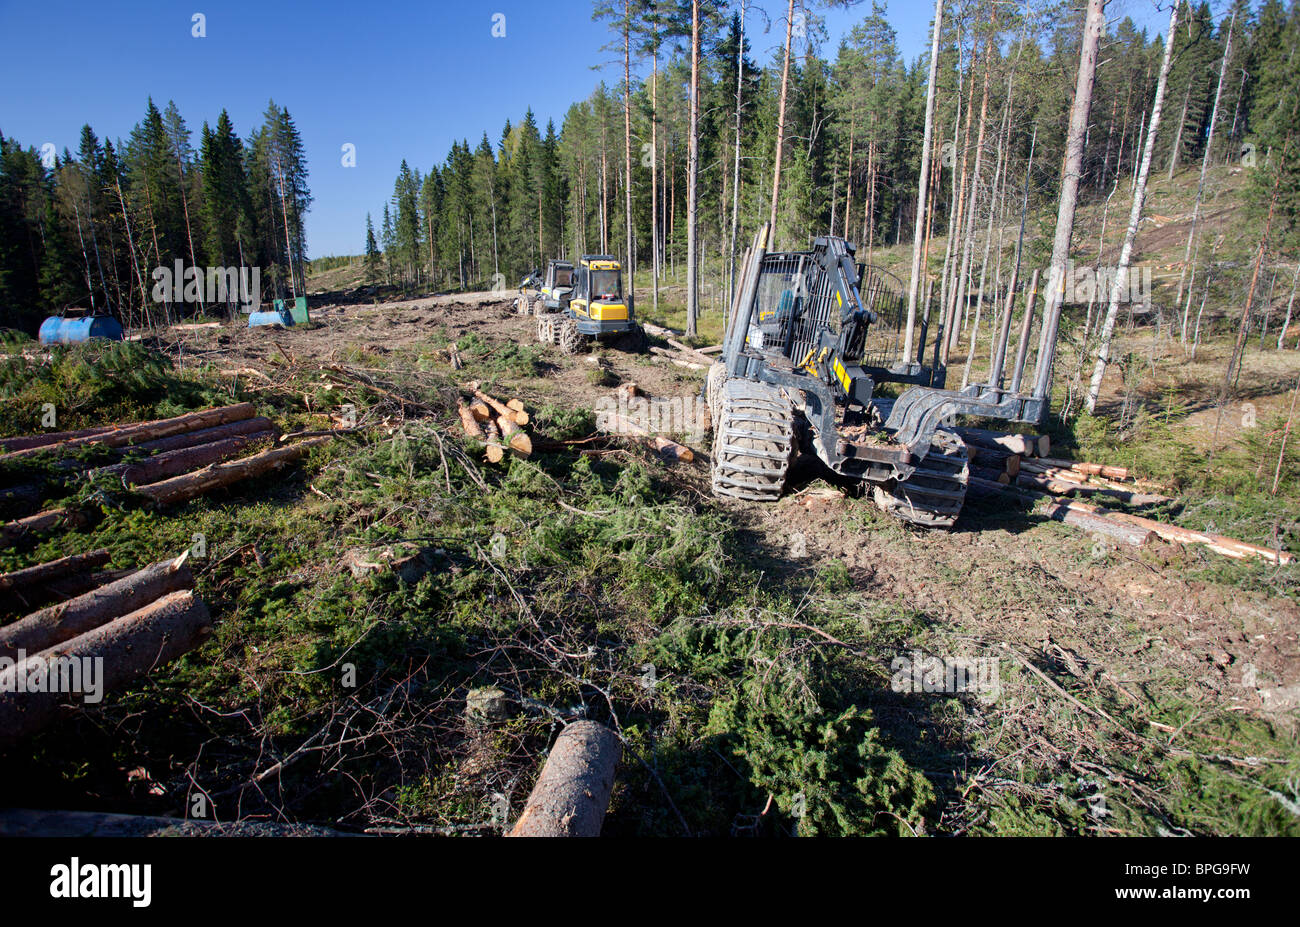 Ponsse Buffalo forwarder and Beaver forest harvester at clear cutting area , containing mainly pines and spruces - Stock Image